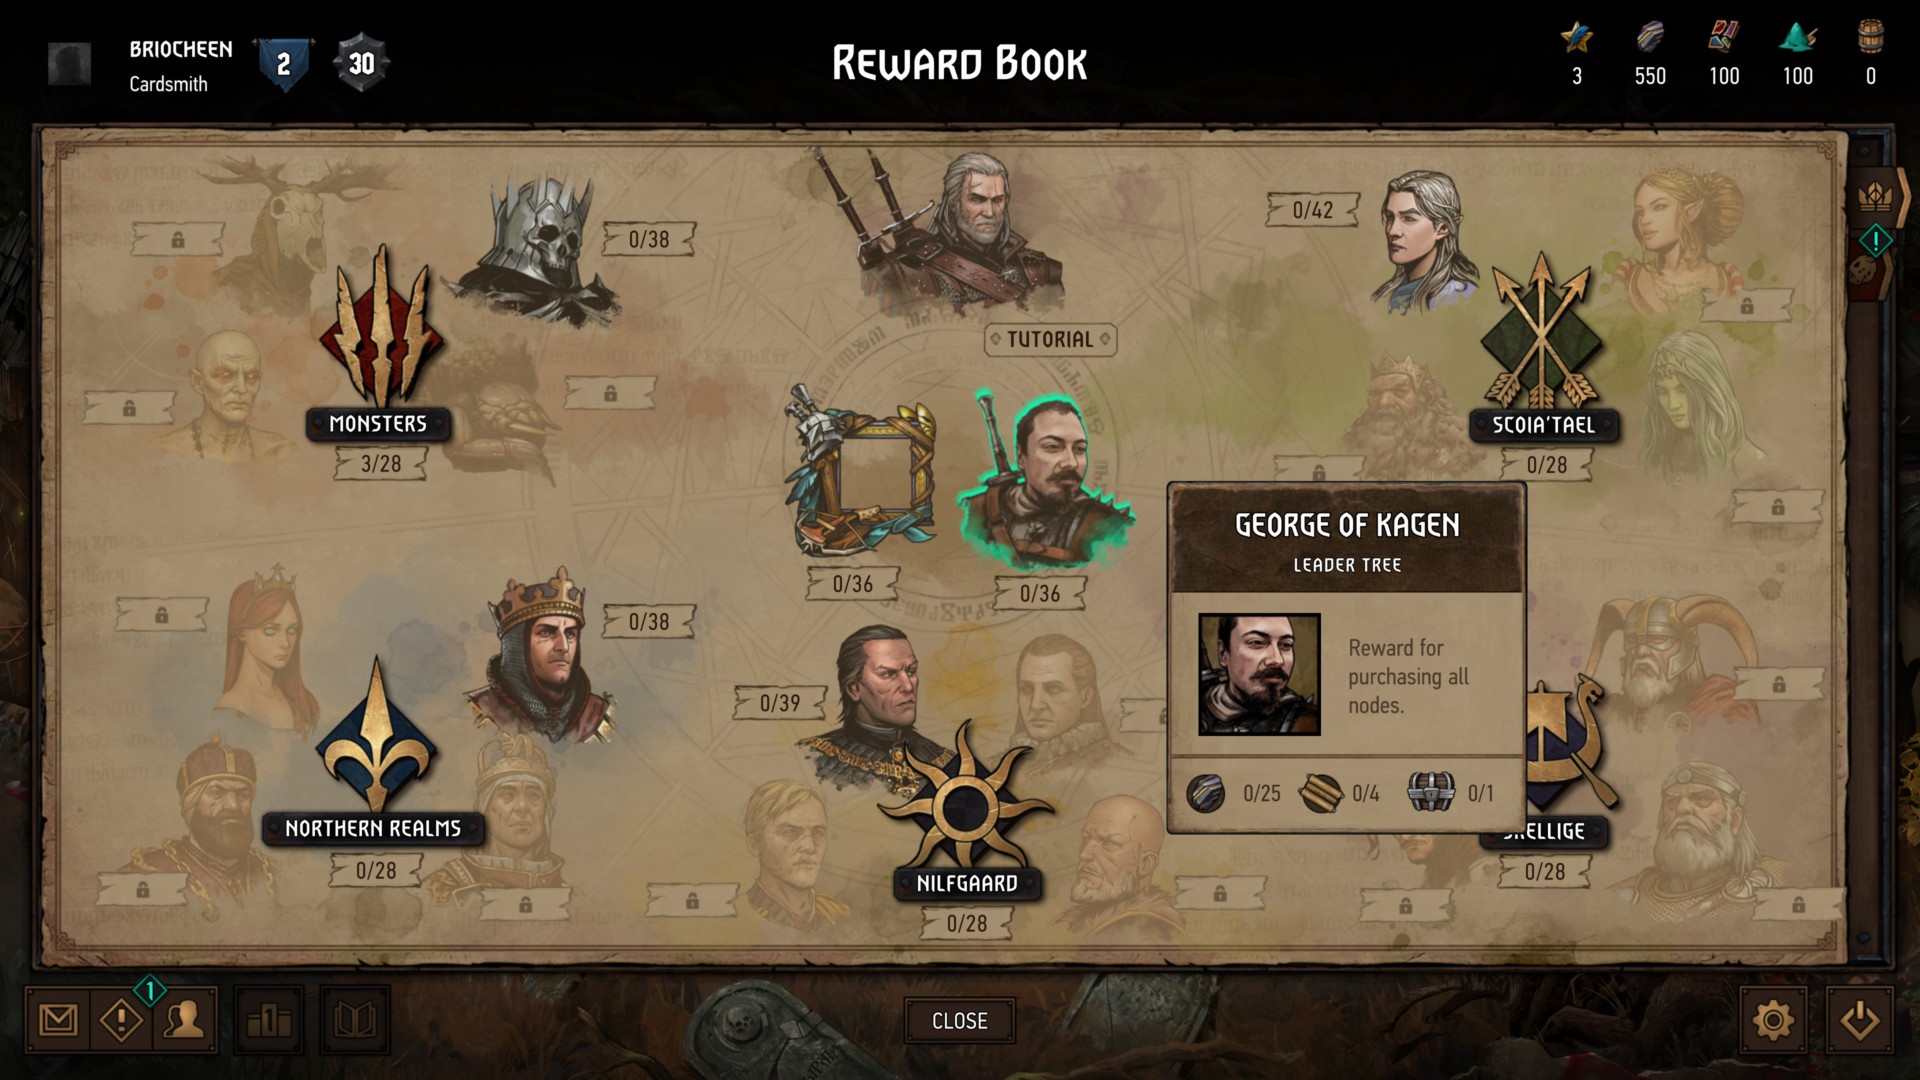 Reward book screenshot of Gwent: The Witcher Card Game video game interface.